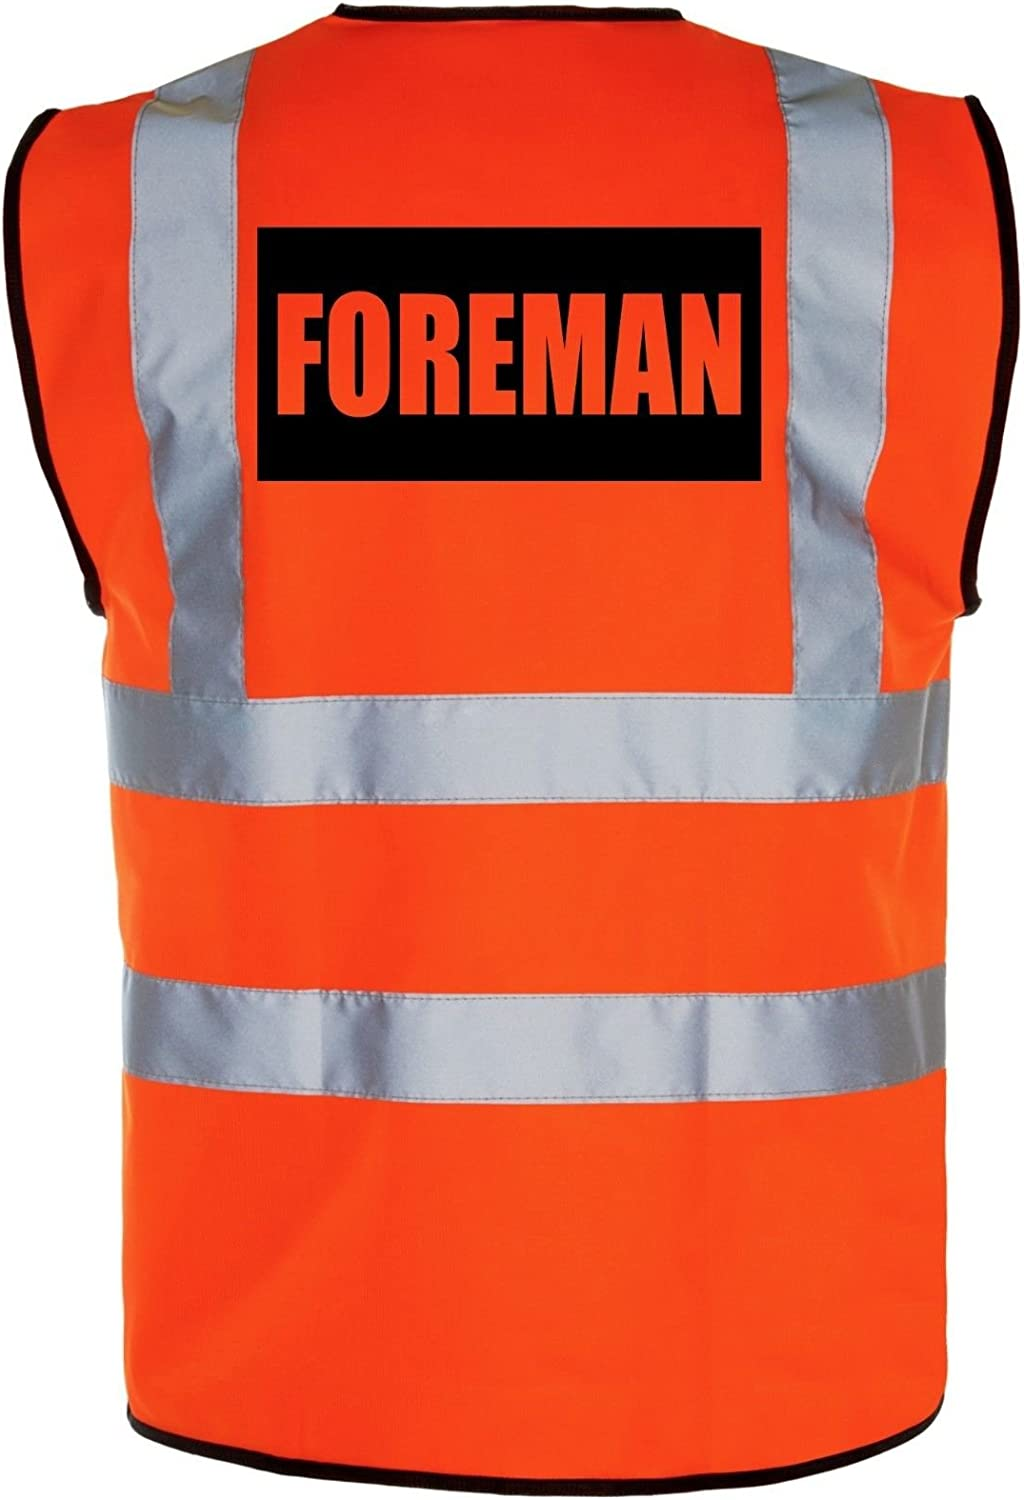 Yellow//Orange Hi-Vis High-Viz Visibility Safety Vest//Waistcoat Foreman